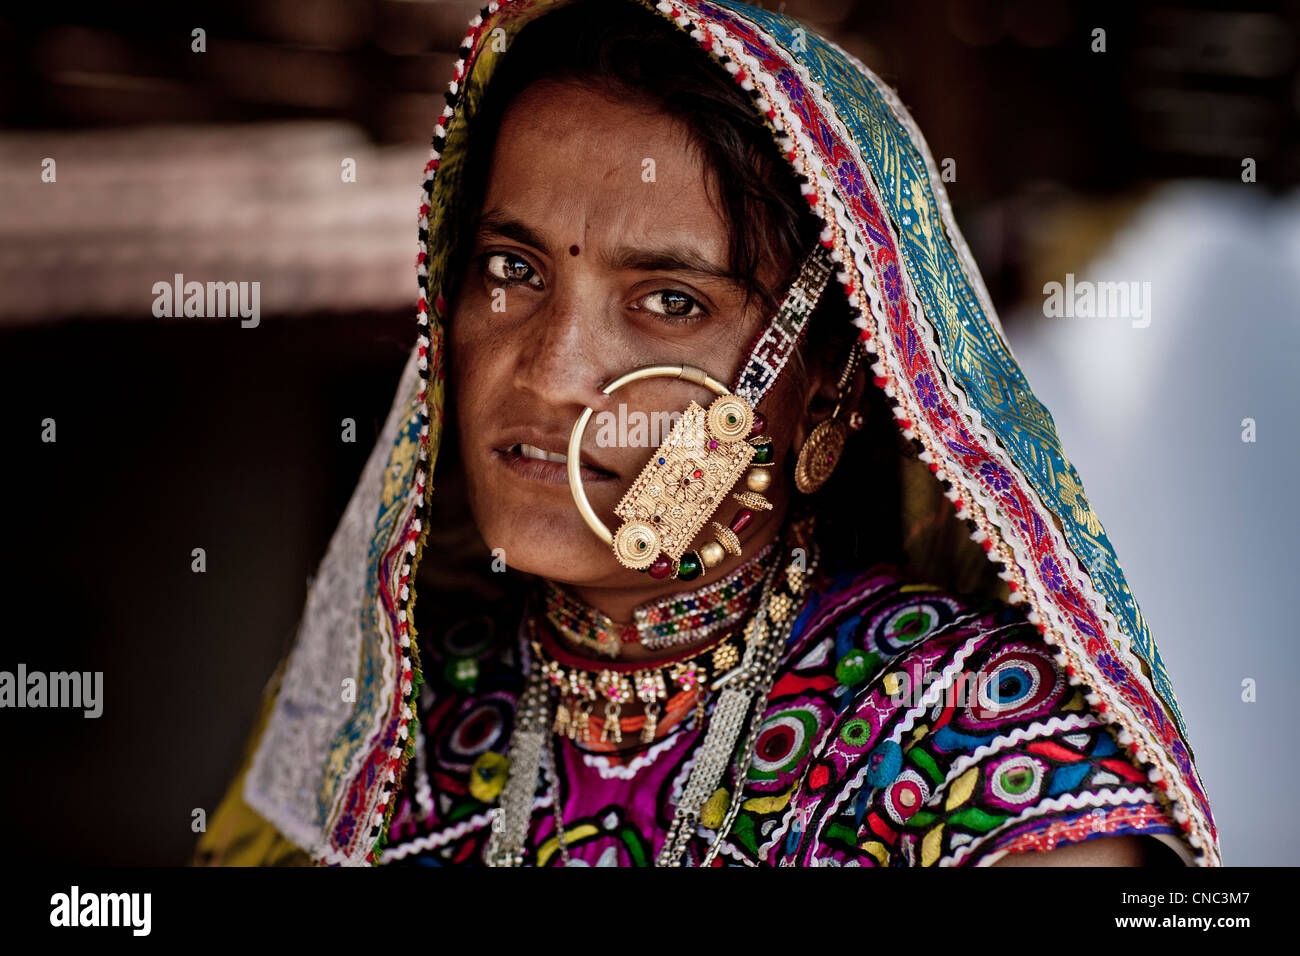 India, Gujarat state, Kutch desert, Ludiya village, portrait of a woman wearing the traditional costume and jewelry - Stock Image